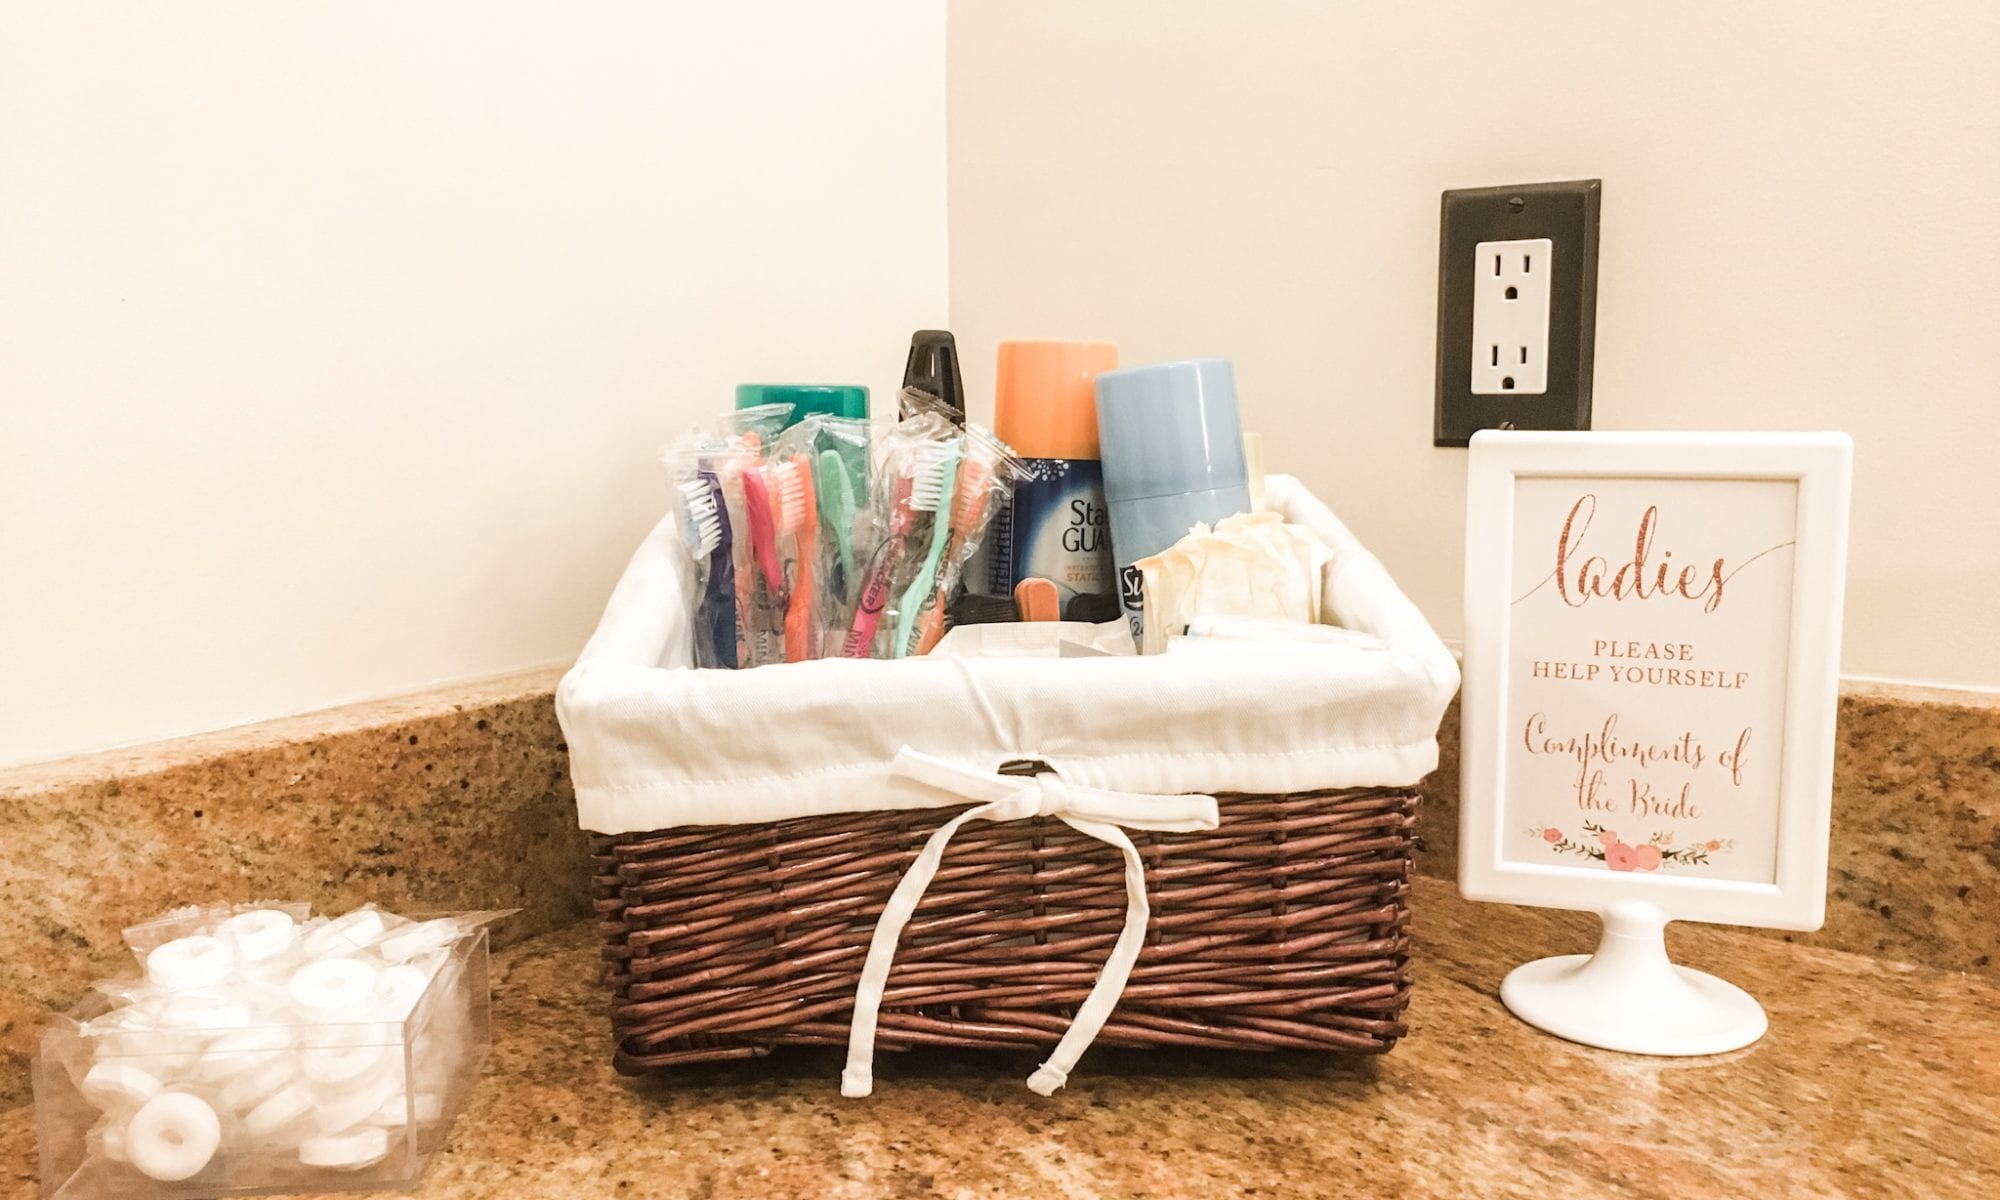 What to Include in Your Bathroom Baskets